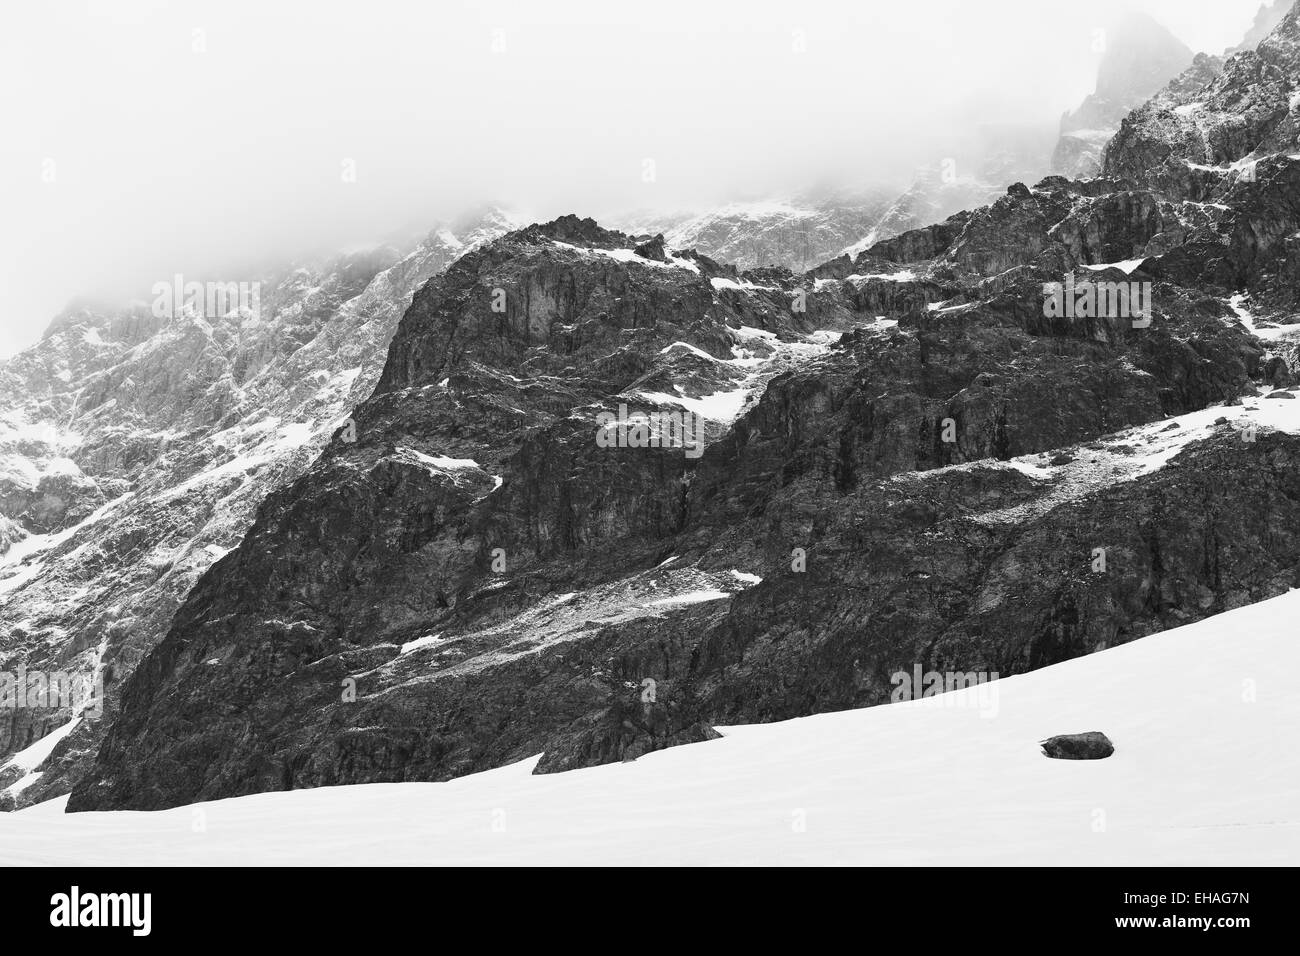 Rocky spur dusted with snow on the southern face of the Barre des Ecrins mountain, French Alps. - Stock Image